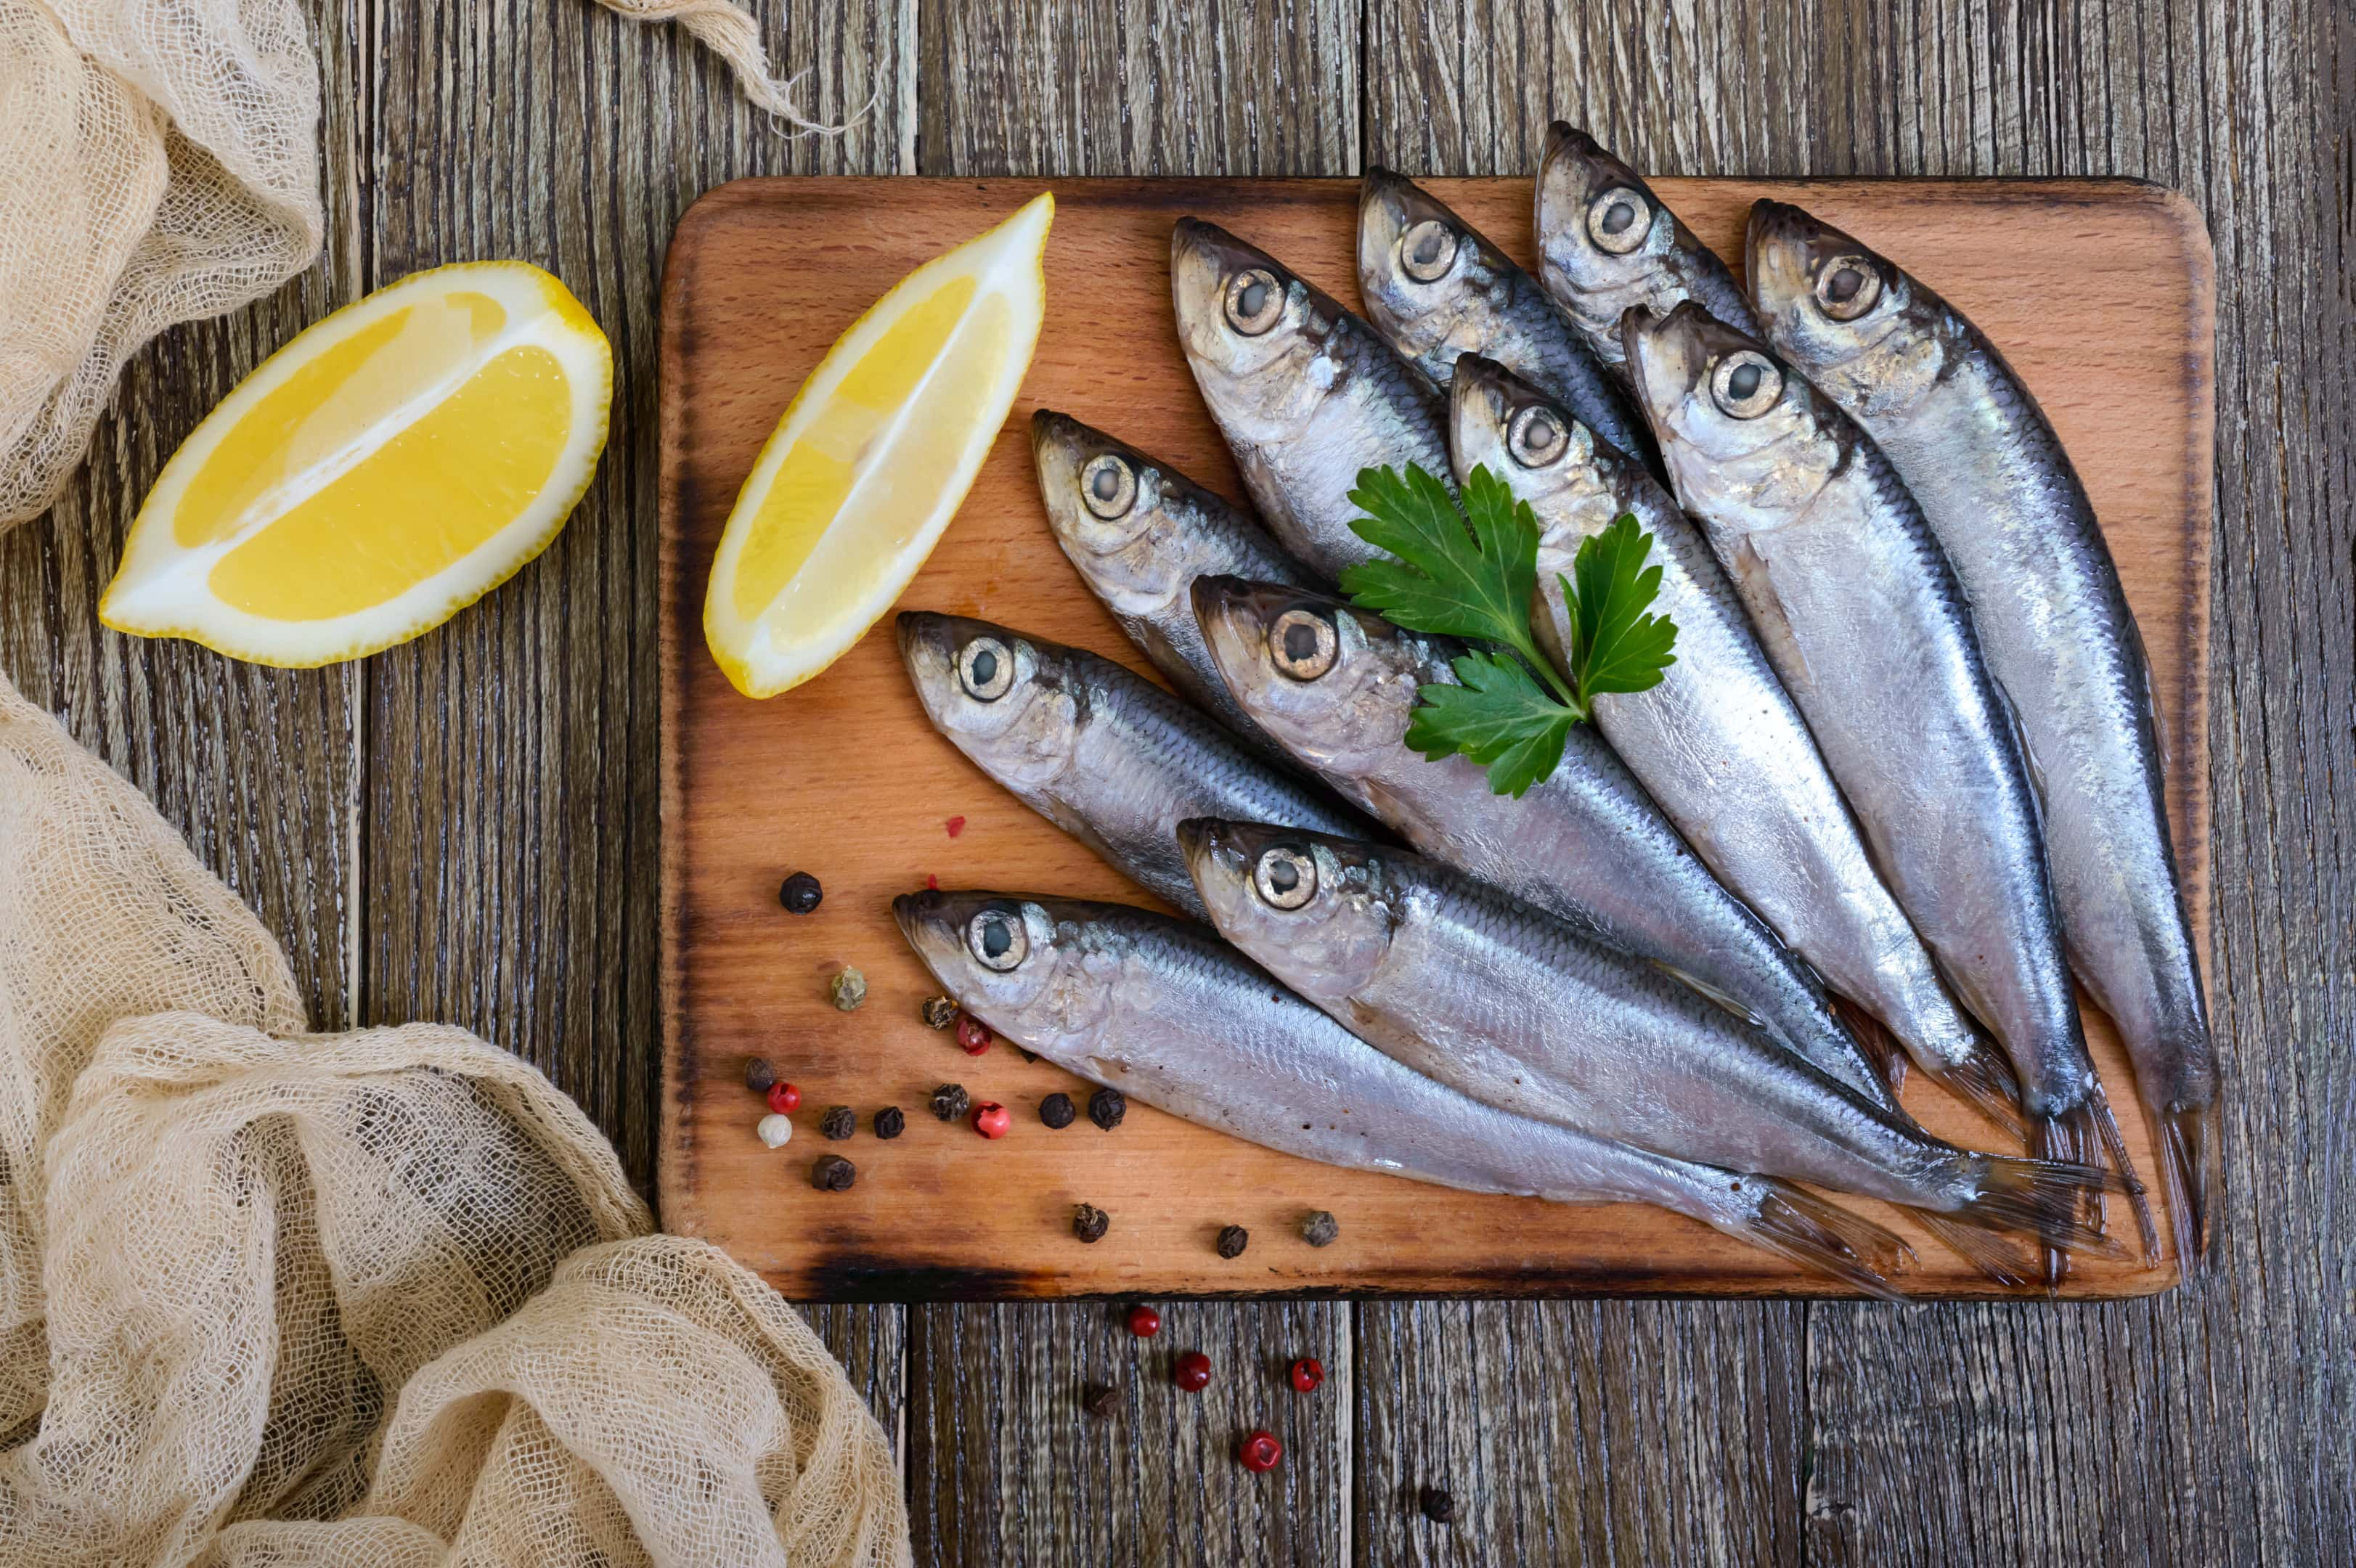 Sardines on wooden board